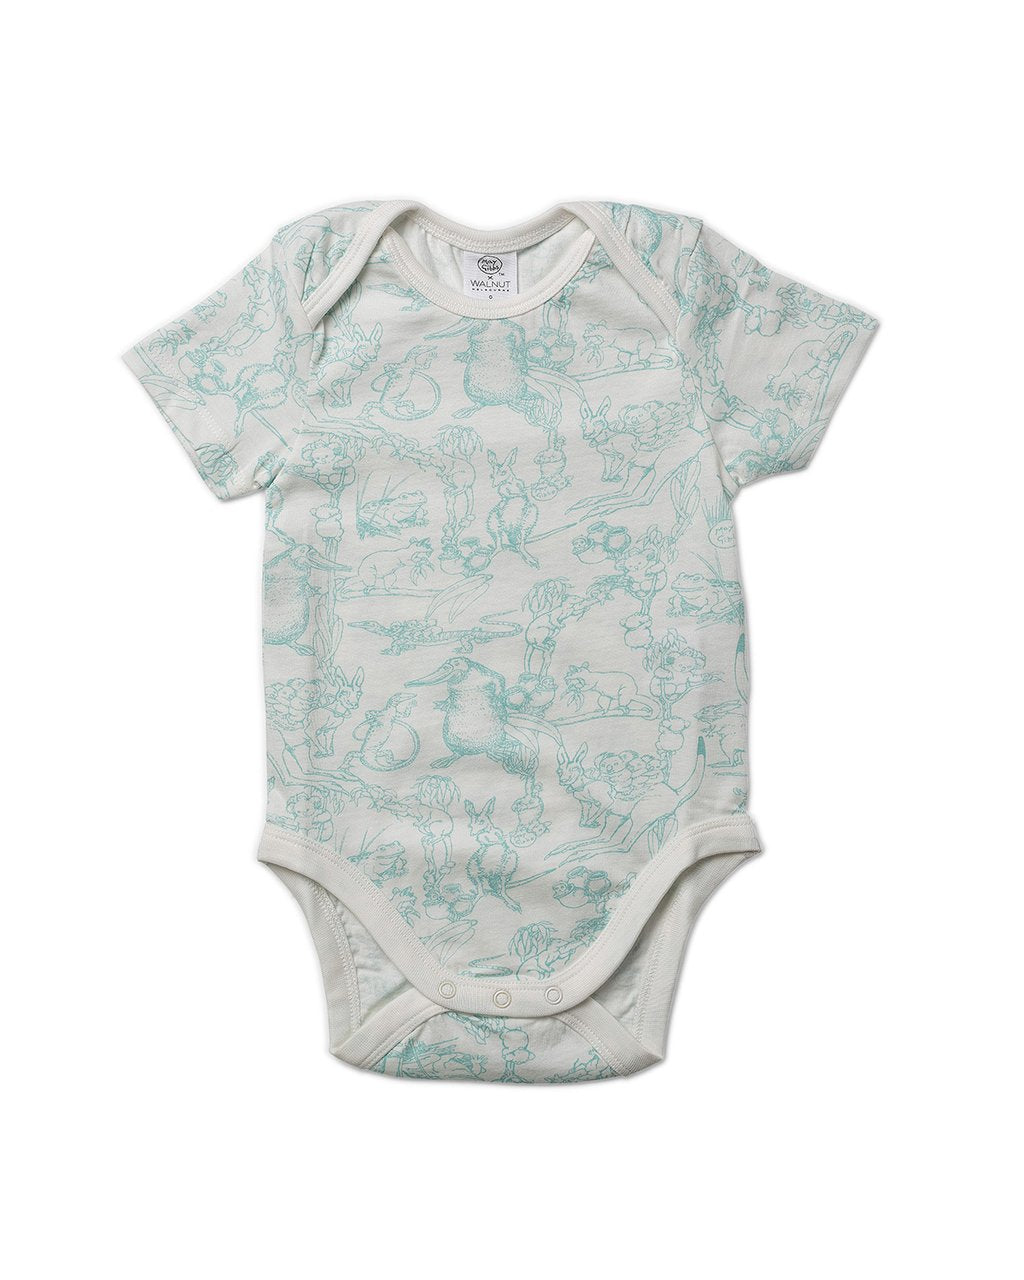 May Gibbs Wren Onesie - Bush Dance Sage